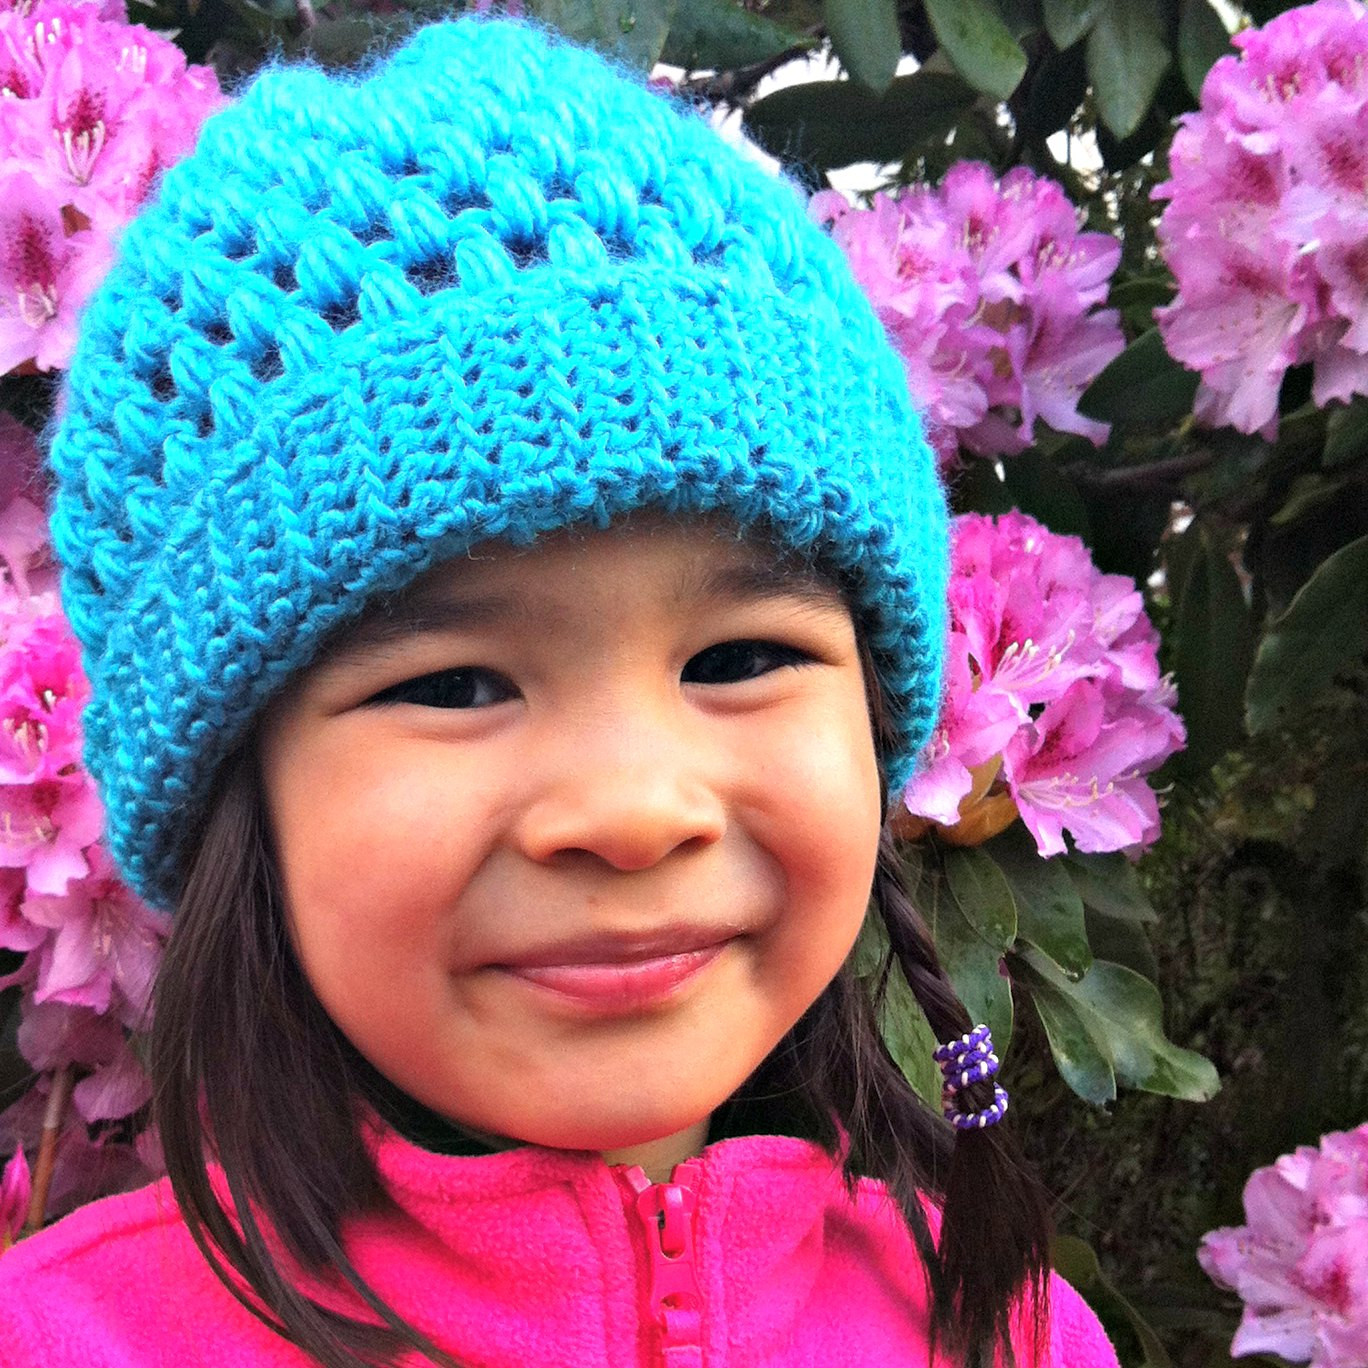 Free Crochet Hat Patterns Unique Sew Creative Crocheted Kids Slouch Hat Pattern Great for Of Superb 50 Ideas Free Crochet Hat Patterns